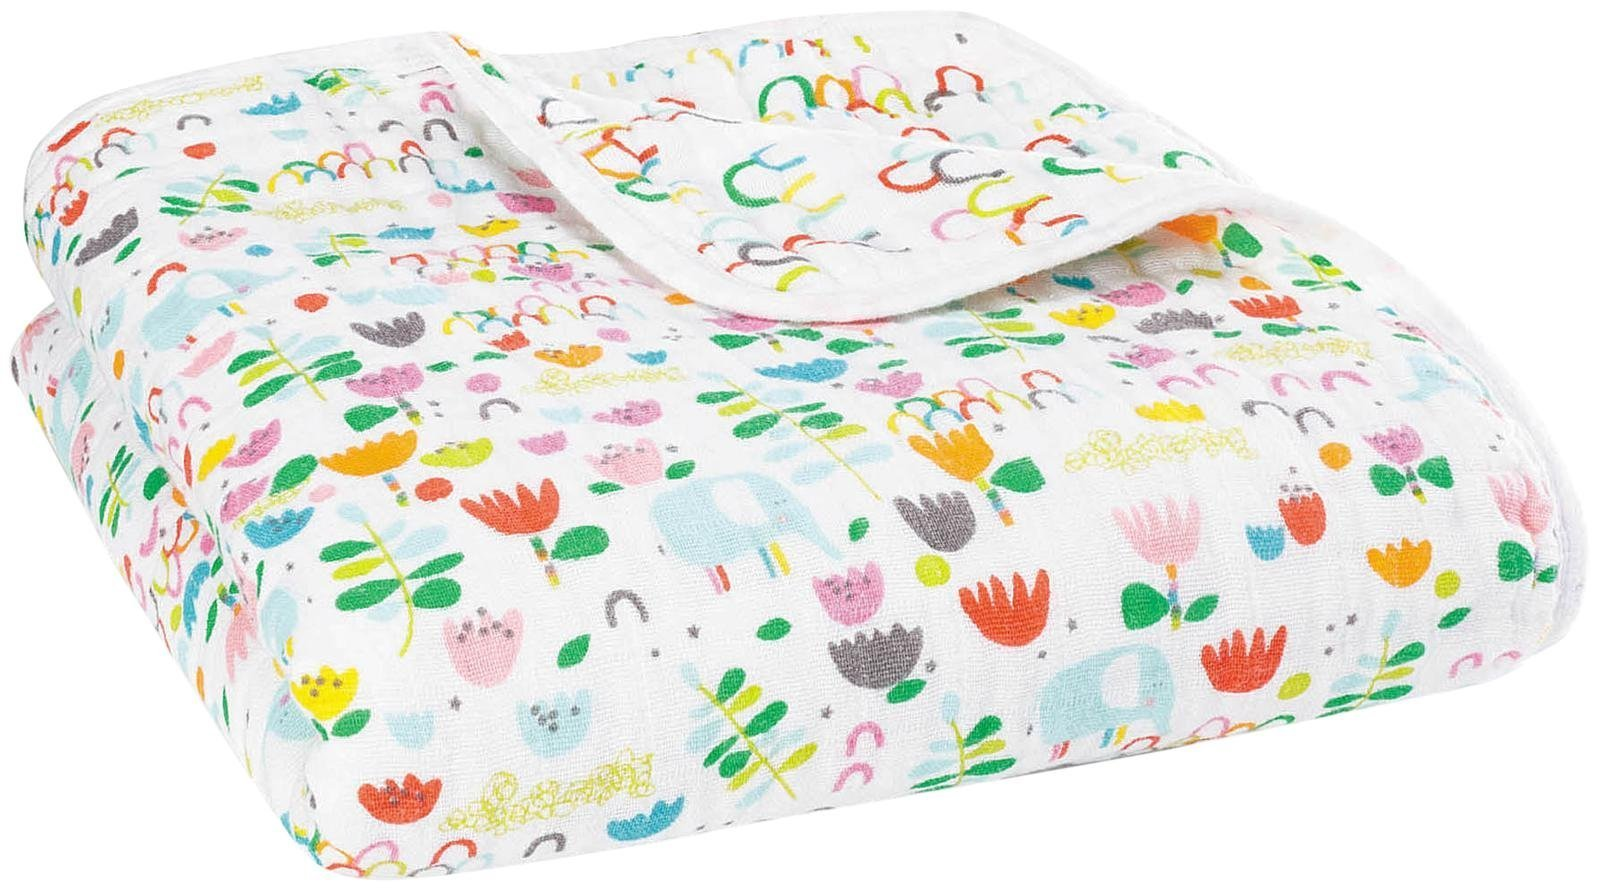 aden + anais Zutano dream blanket, fairground